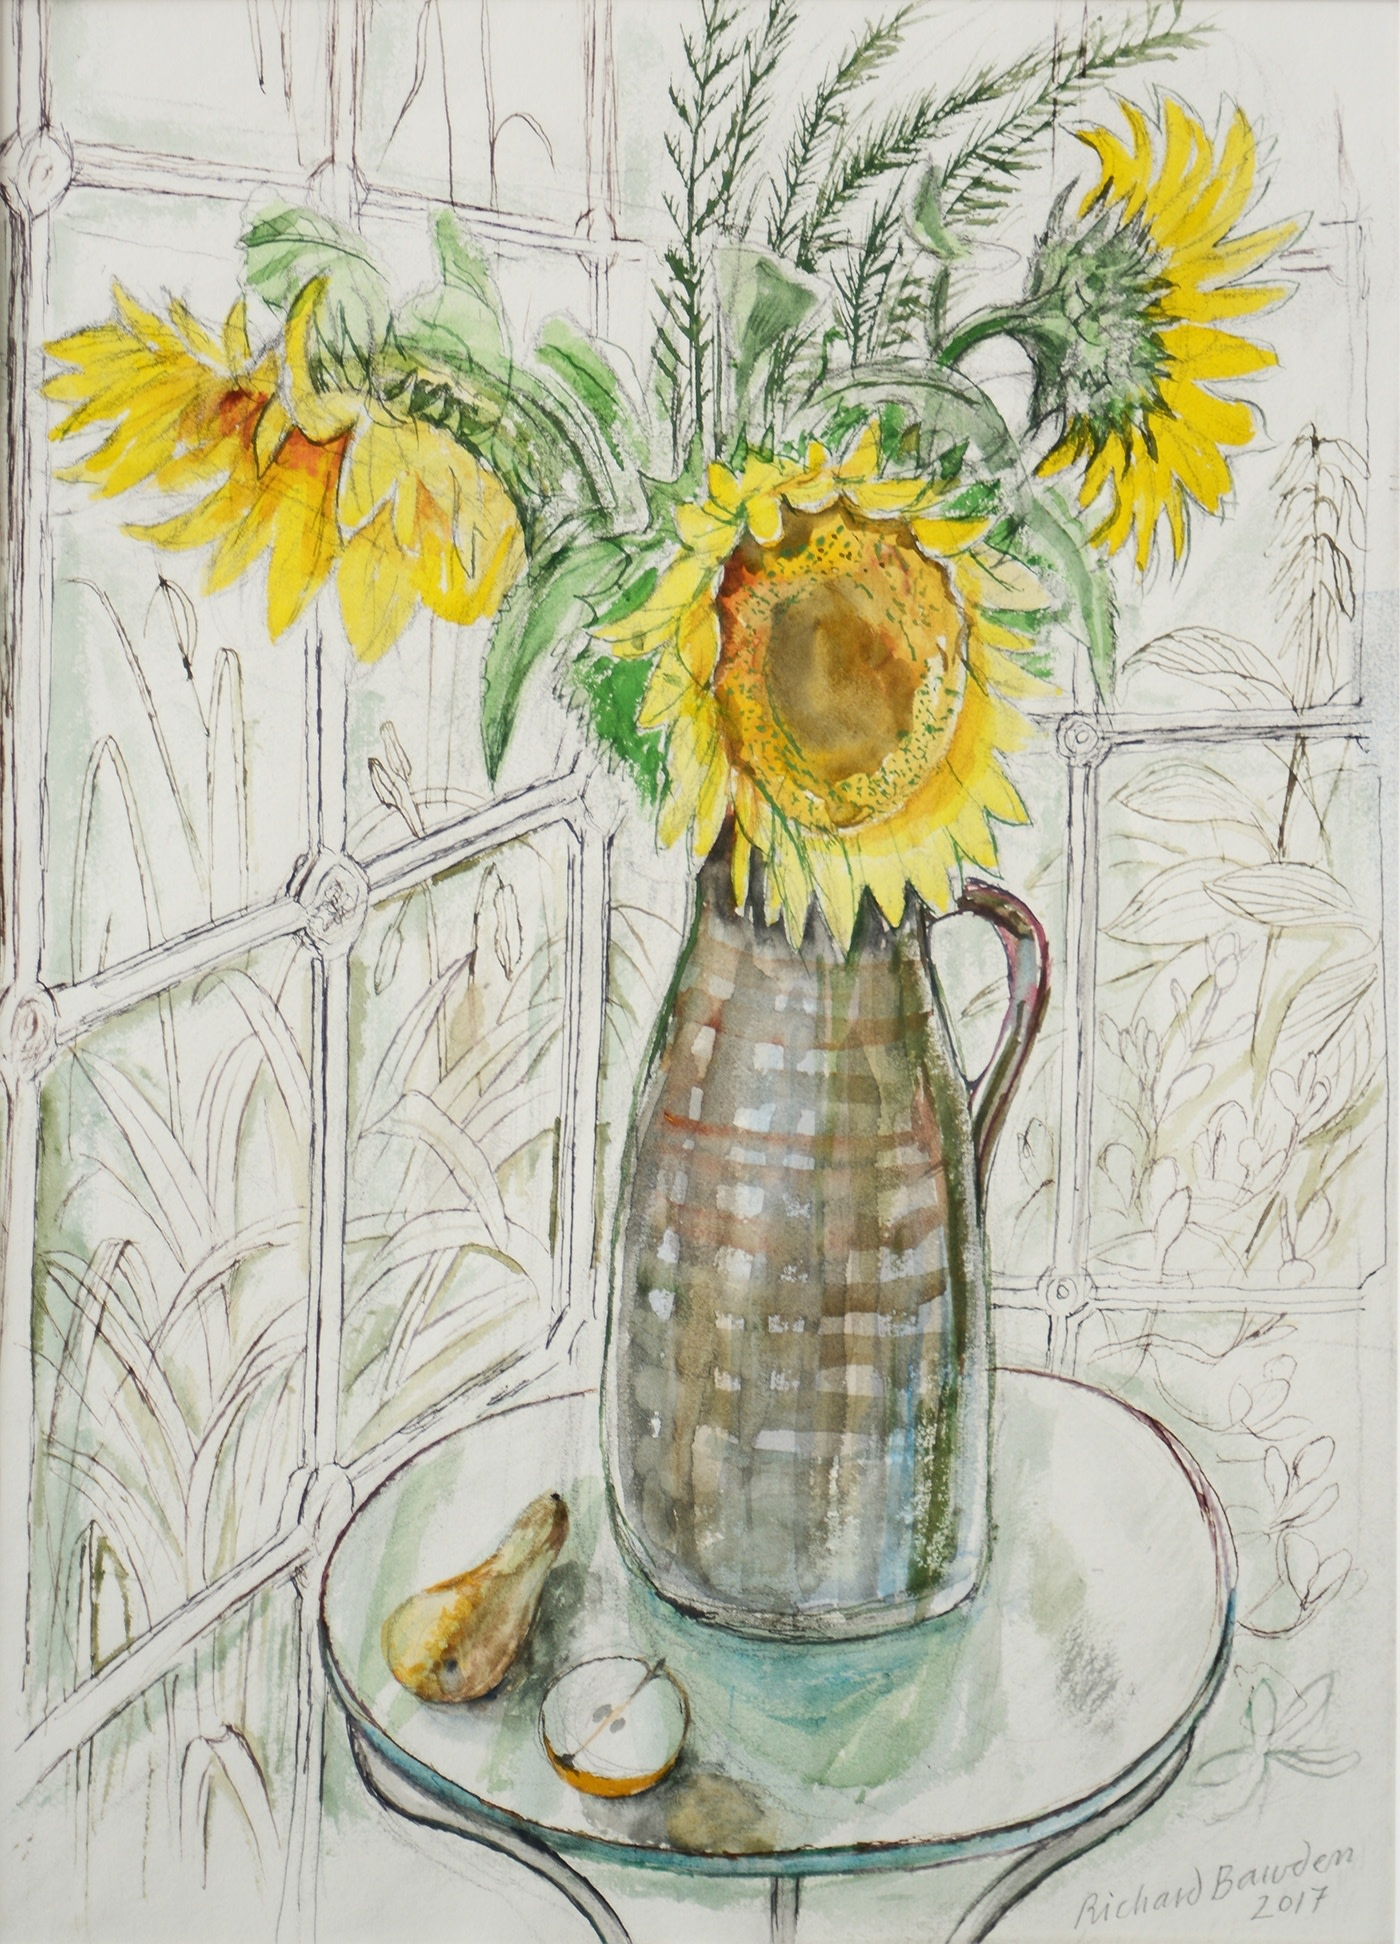 <span class=&#34;link fancybox-details-link&#34;><a href=&#34;/artists/38-richard-bawden/works/10688-richard-bawden-conservatory-sunflowers/&#34;>View Detail Page</a></span><div class=&#34;artist&#34;><span class=&#34;artist&#34;><strong>Richard Bawden</strong></span></div>